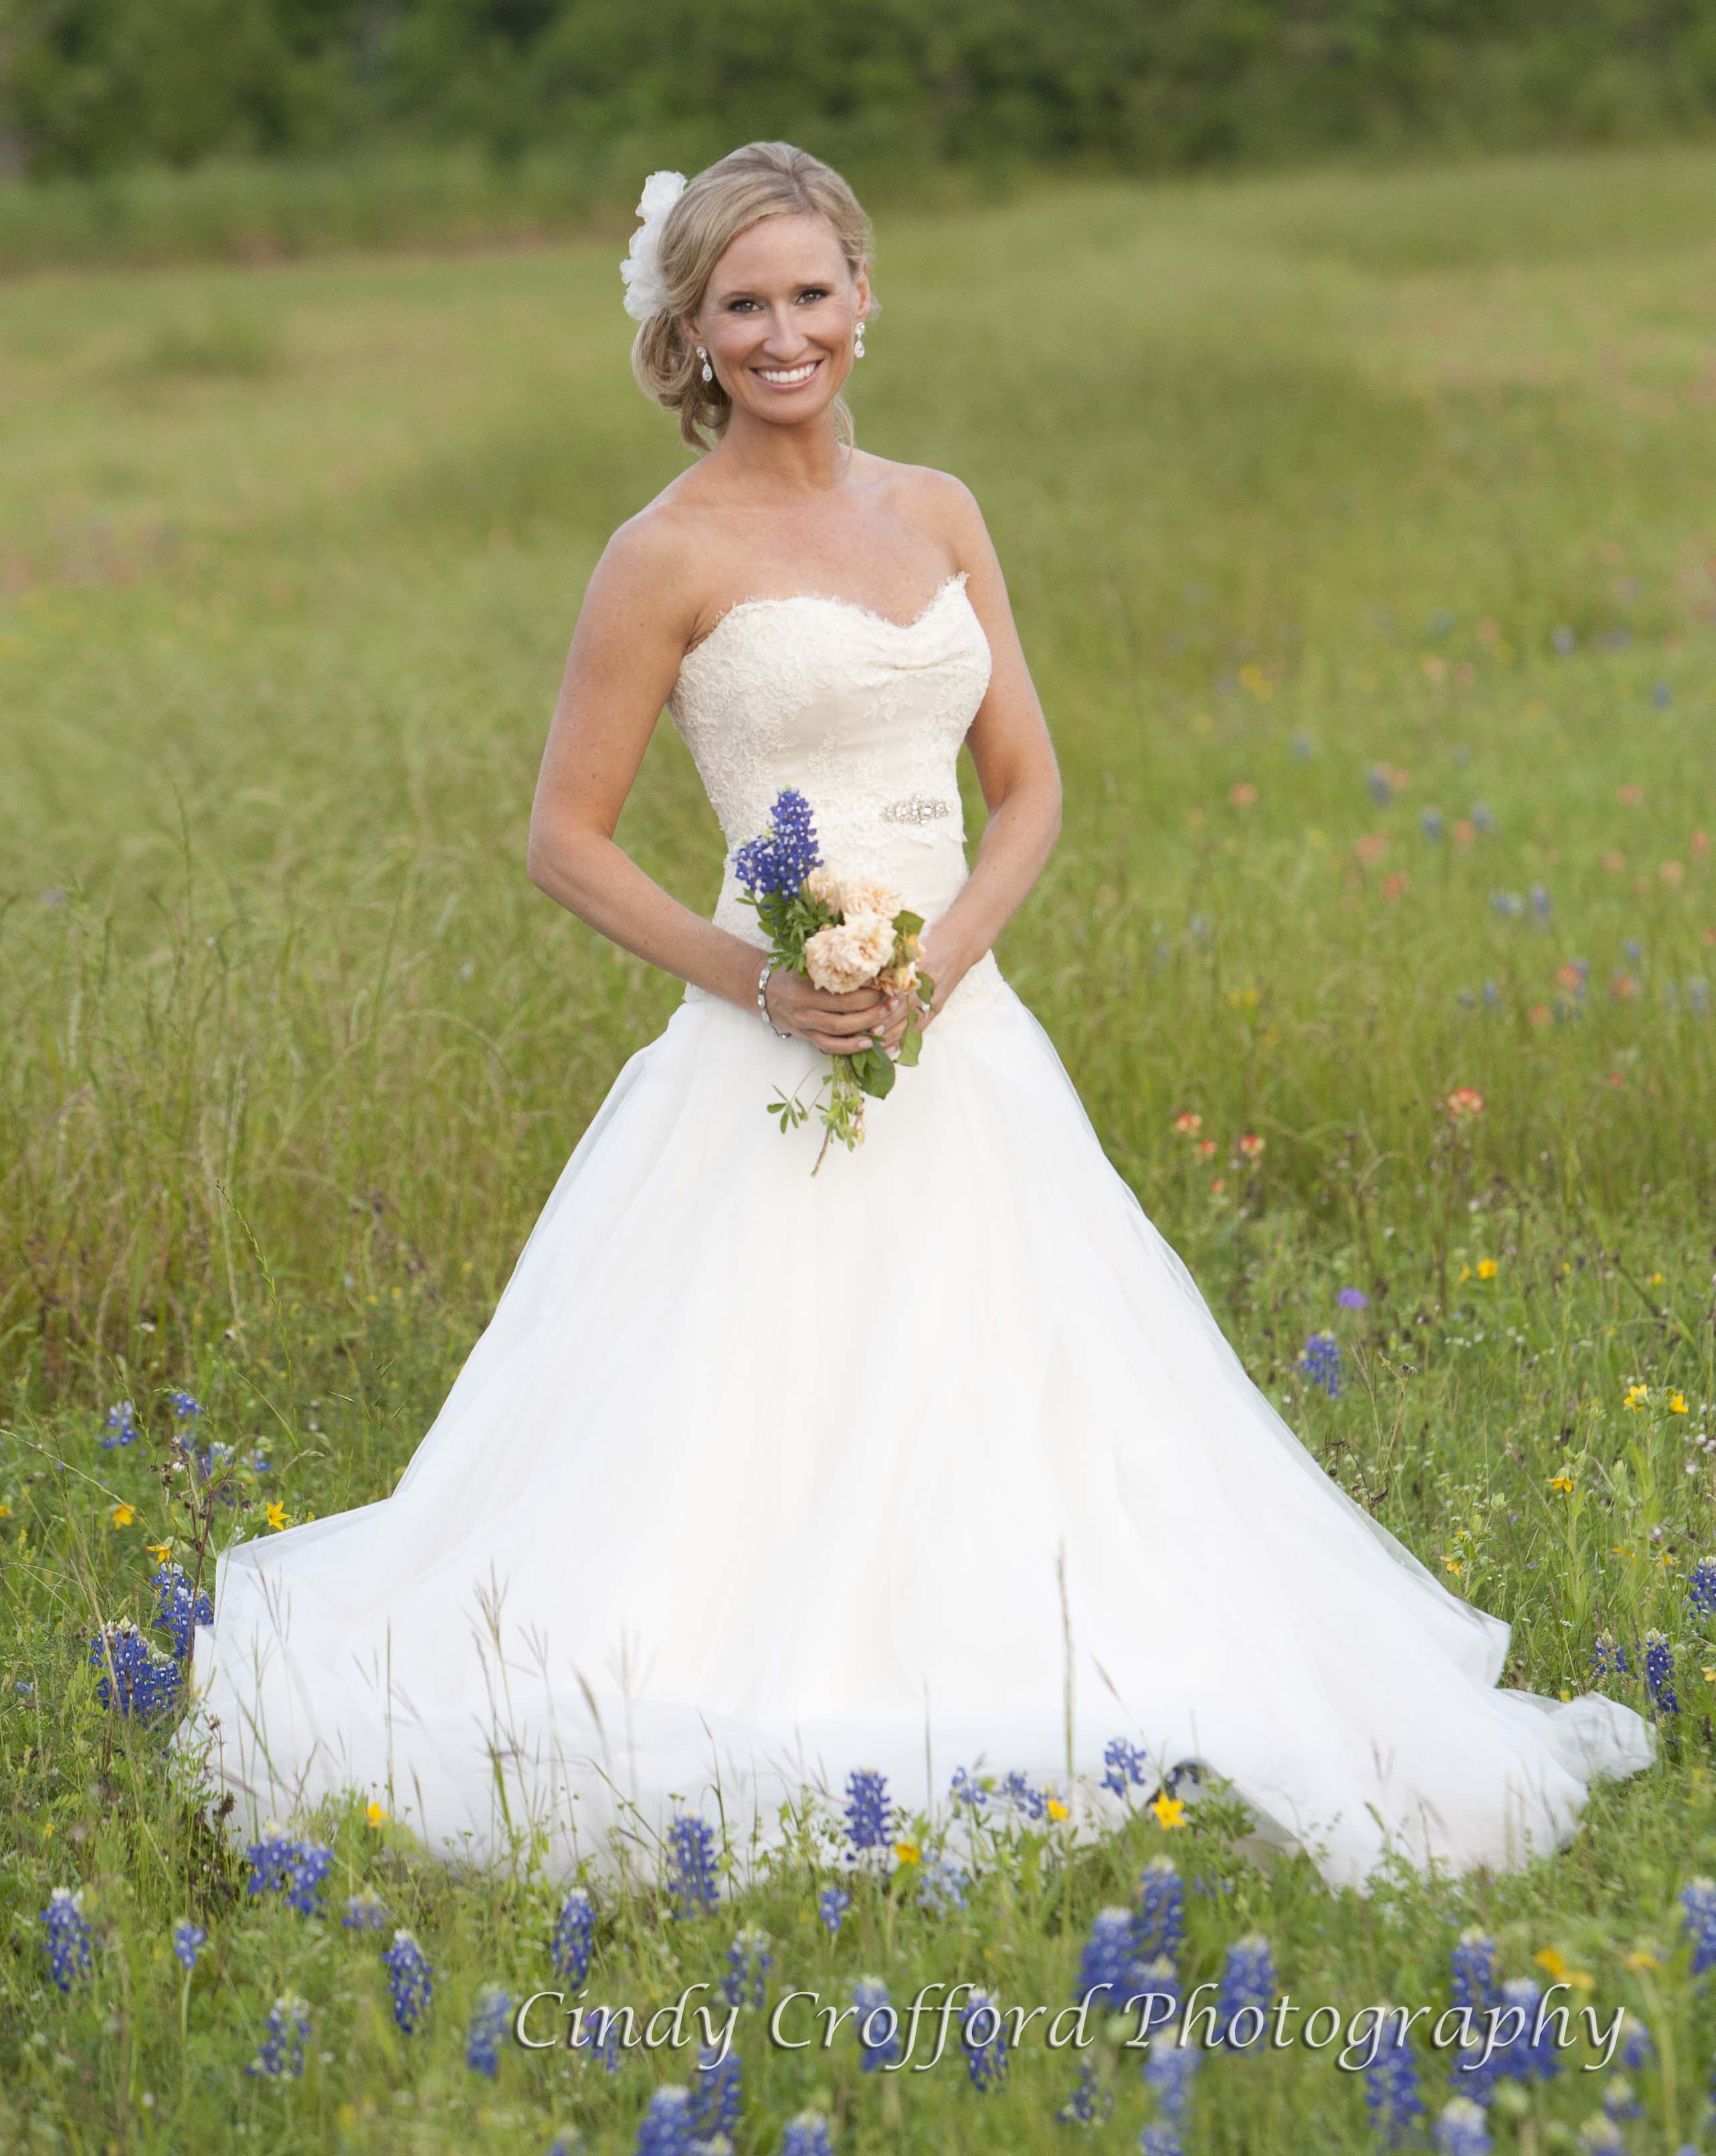 This Bride Flew In To Take Bridal Photos At Our Annual Bluebonnet